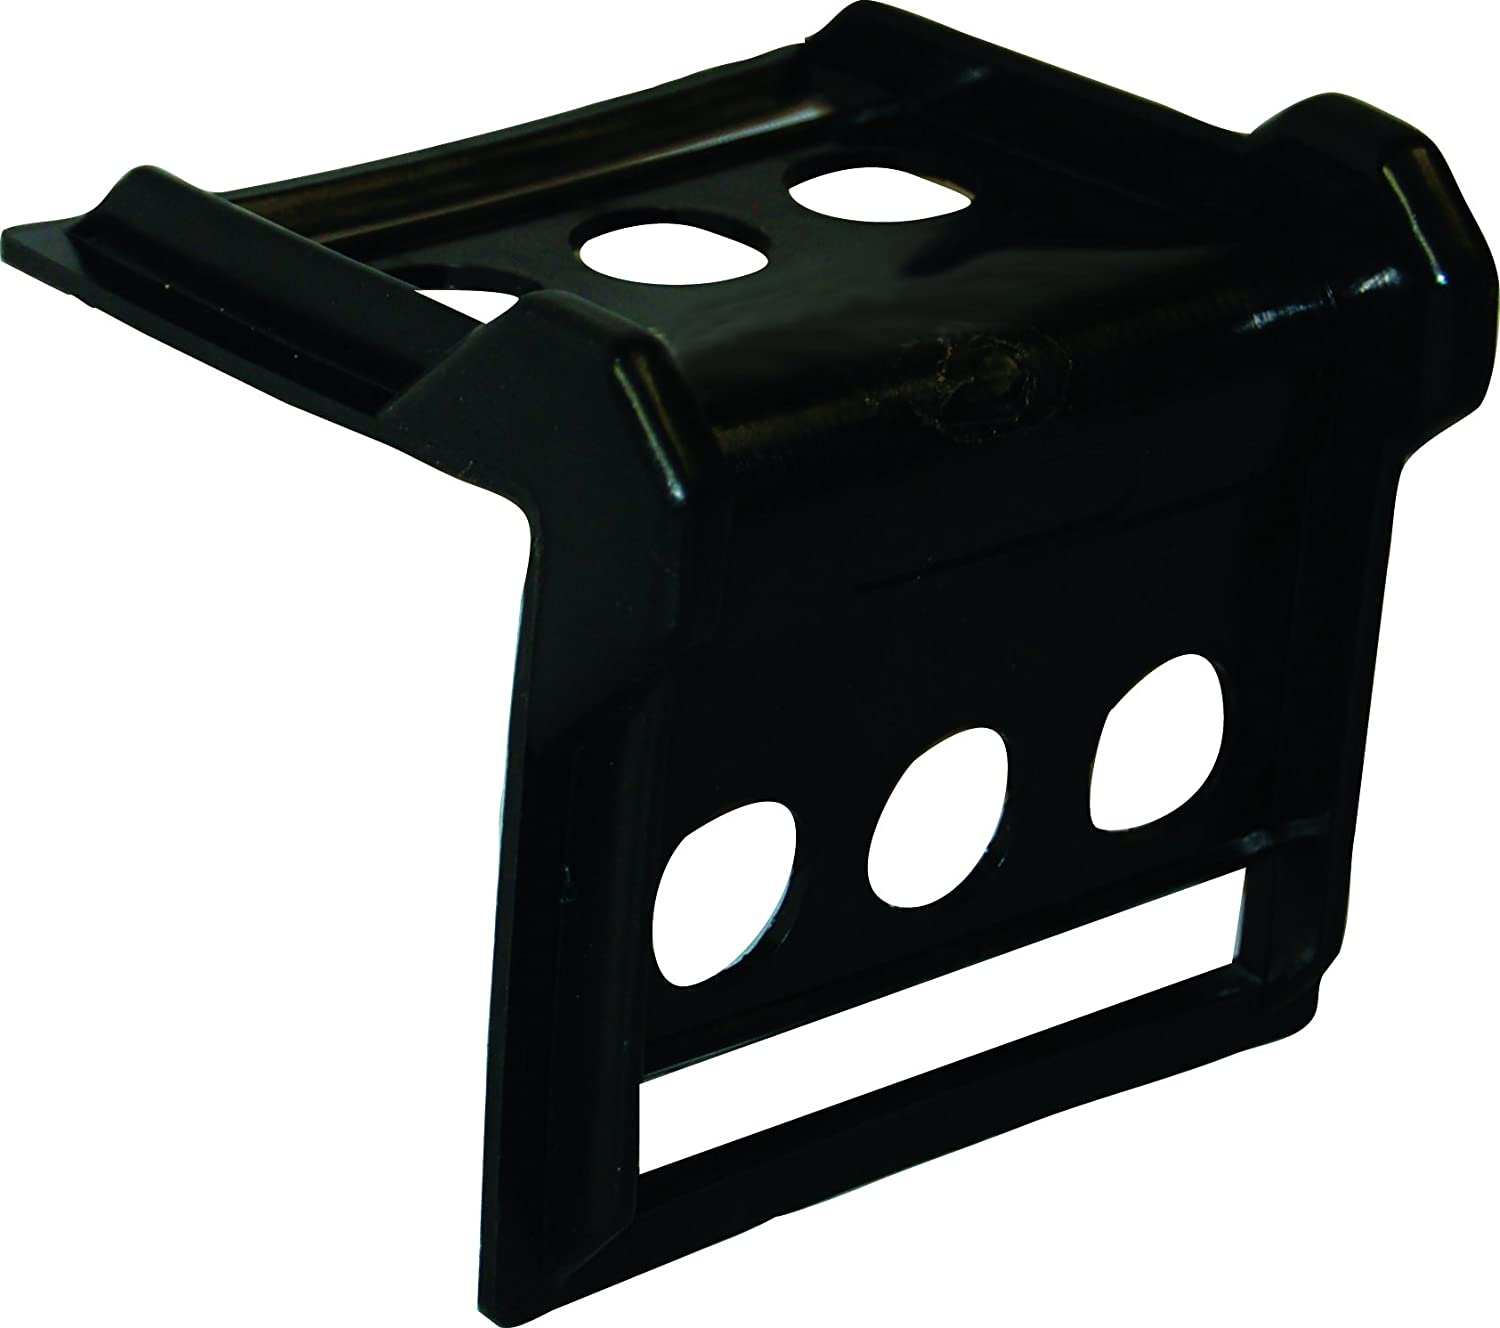 Plastic Ancra Corner Protector Up to 4-Inch Webbing 43986-10